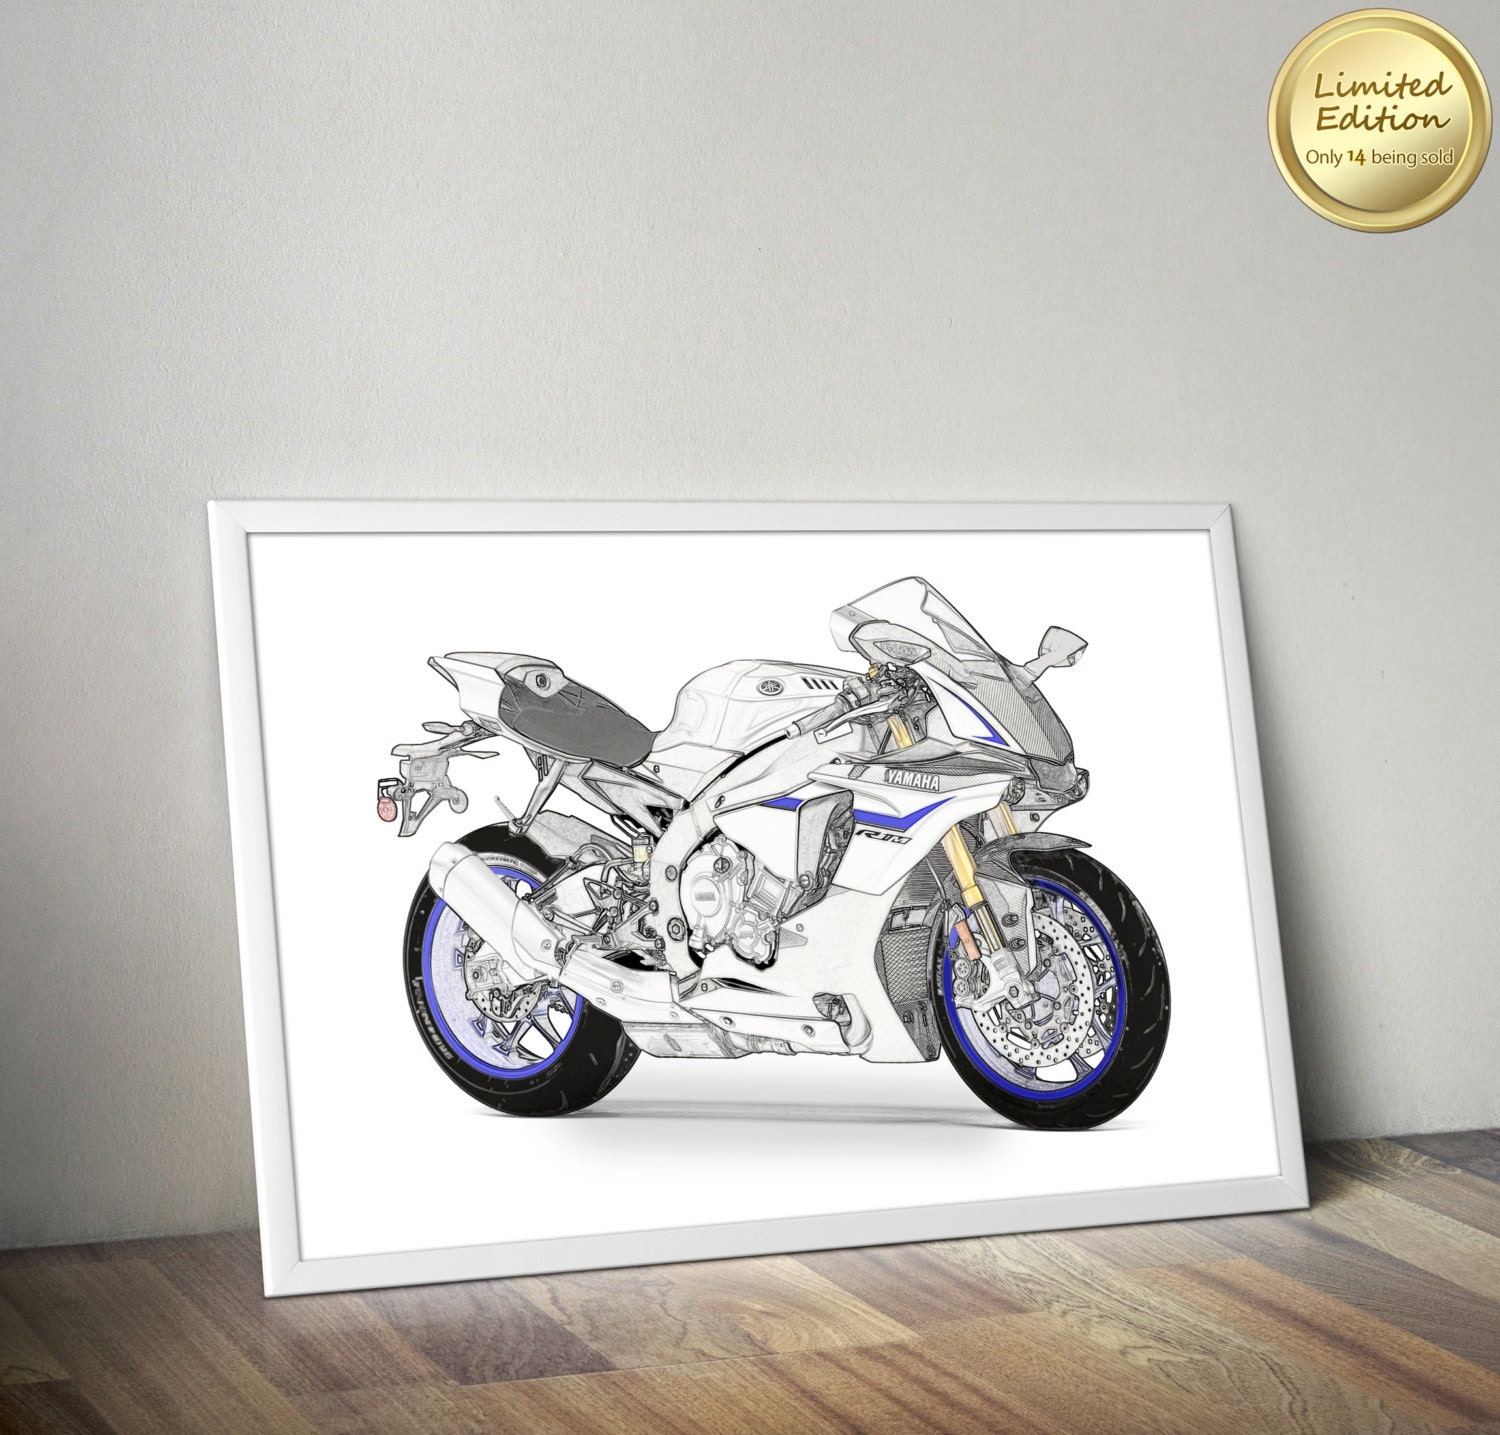 Yamaha motorcycle gloves india - Yamaha Poster Print Yamaha Motorcycle Poster A3 Print Biker Gift Print Canvas Big Format Motorcycle Print Sportbike Limited Edition